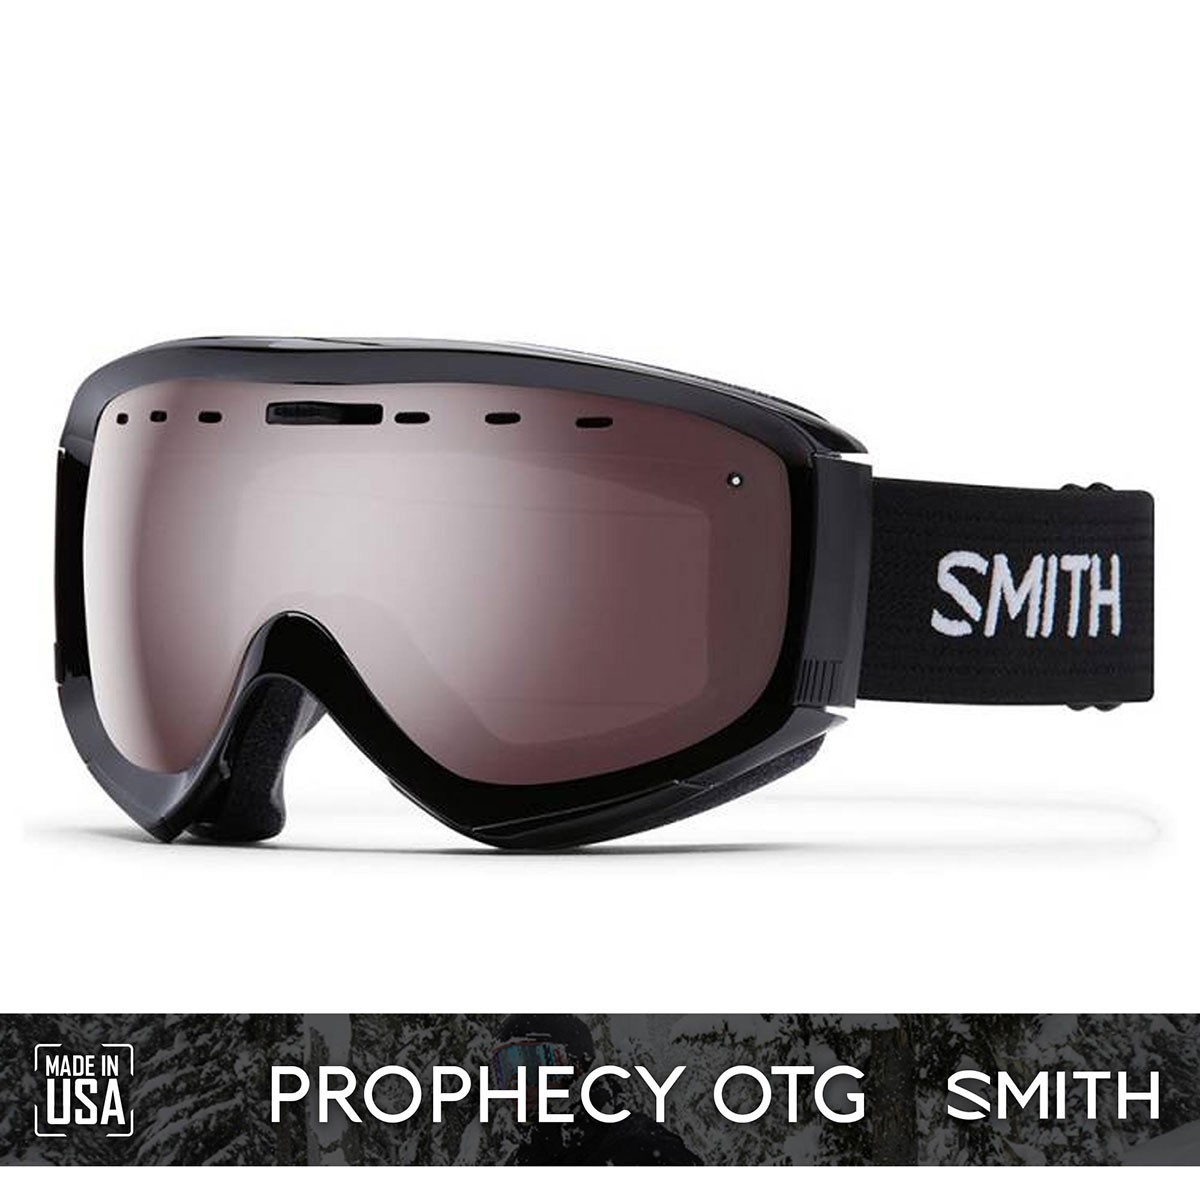 SMITH PROPHECY OTG Black | S2 IGNITOR Mirror - Изображение - AQUAMATRIX